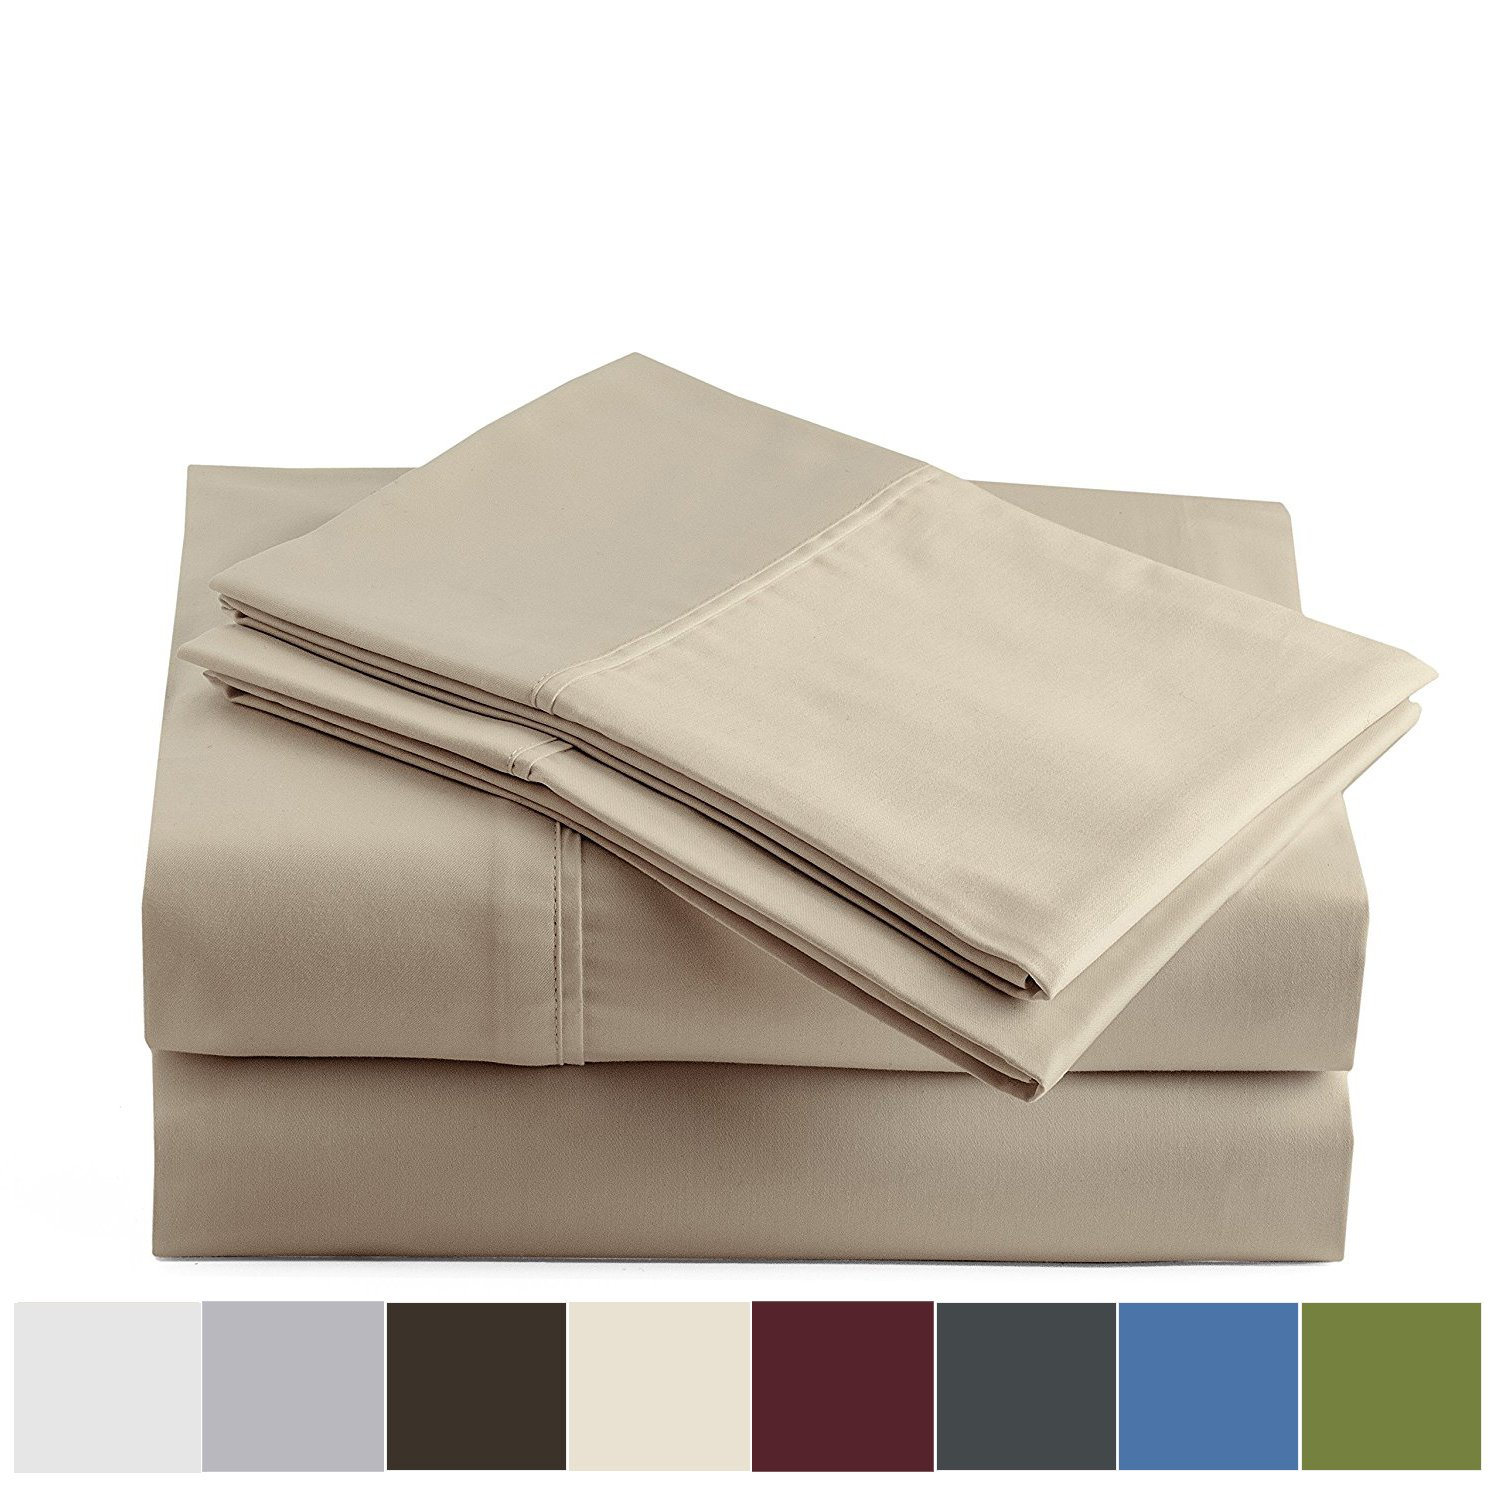 Peru Pima - 600 Thread Count - 100% Peruvian Pima Cotton - Sateen - Bed Sheet Set - Queen, Latte by Peru Pima